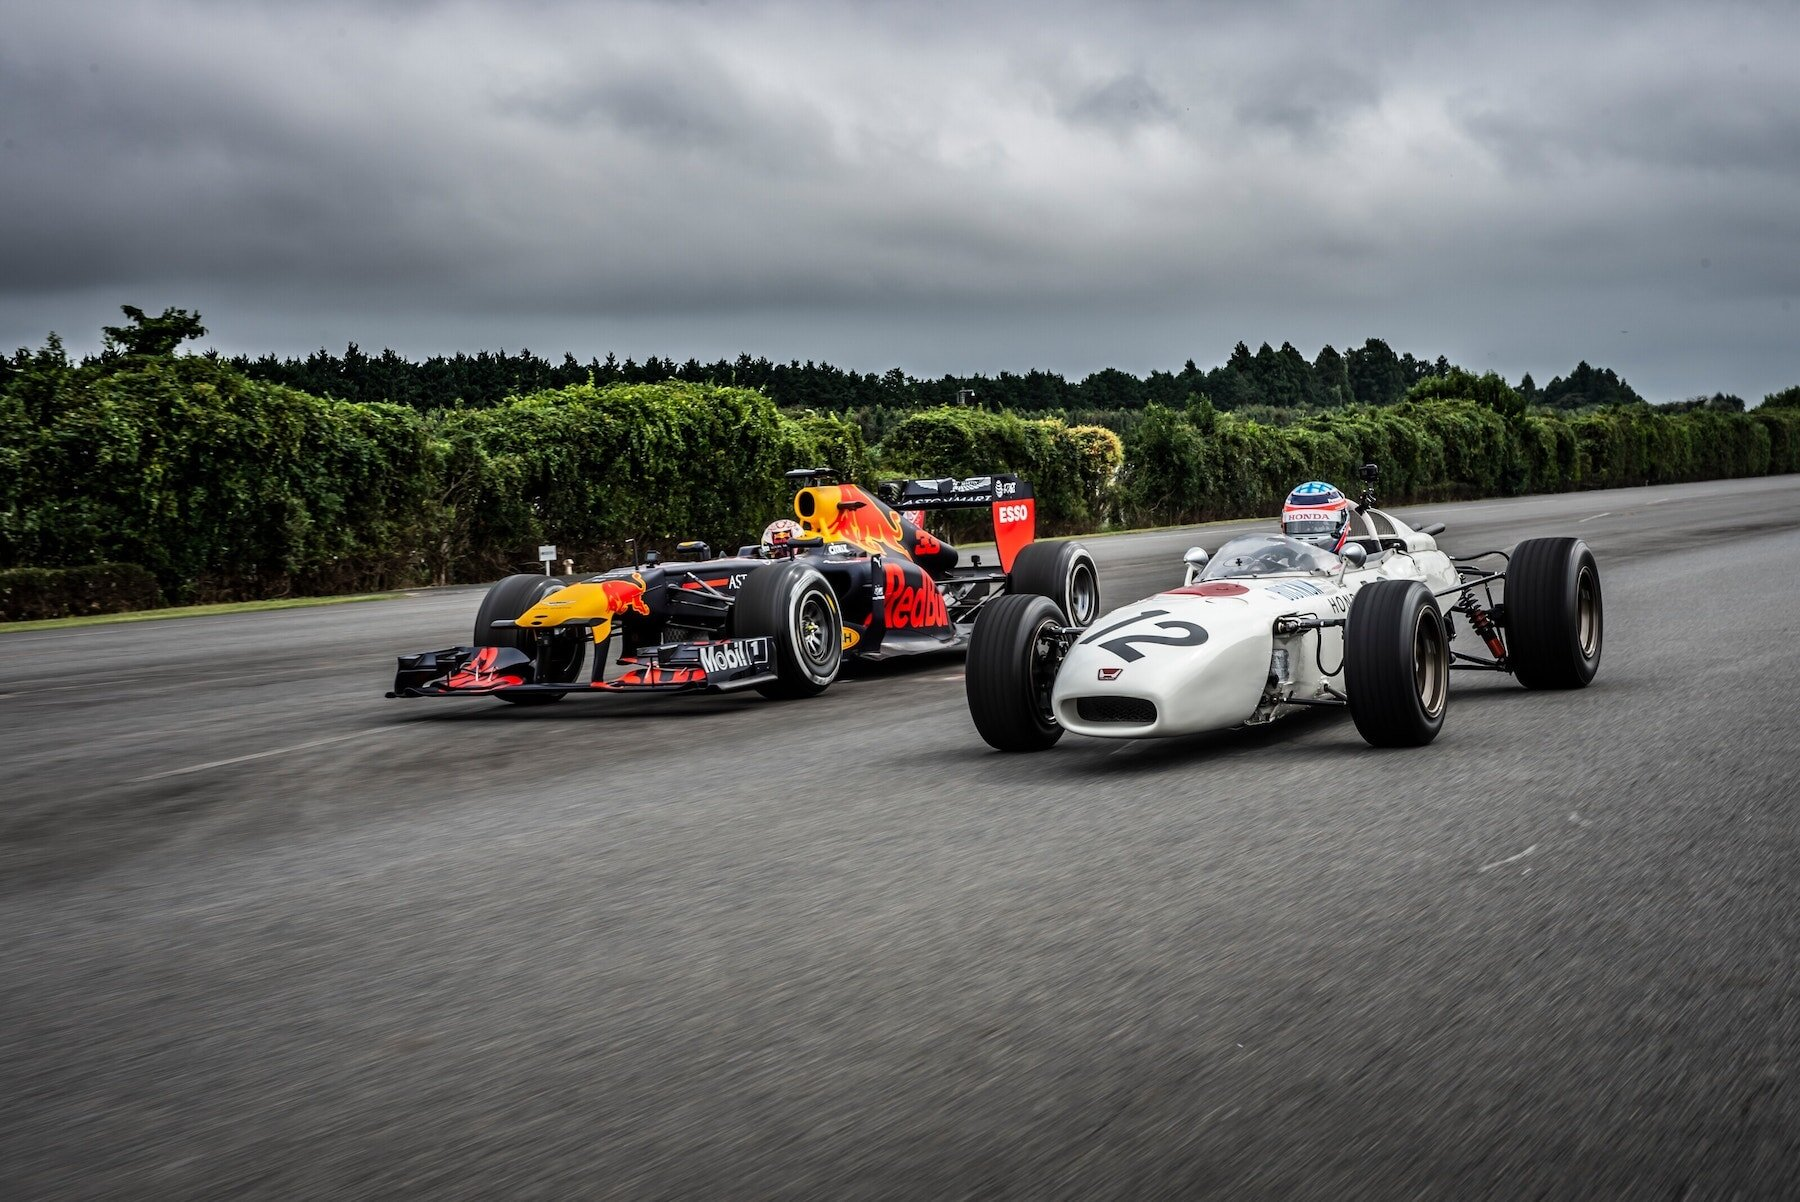 2019 Old and New RA272 and RB7 at Japan 4.jpg